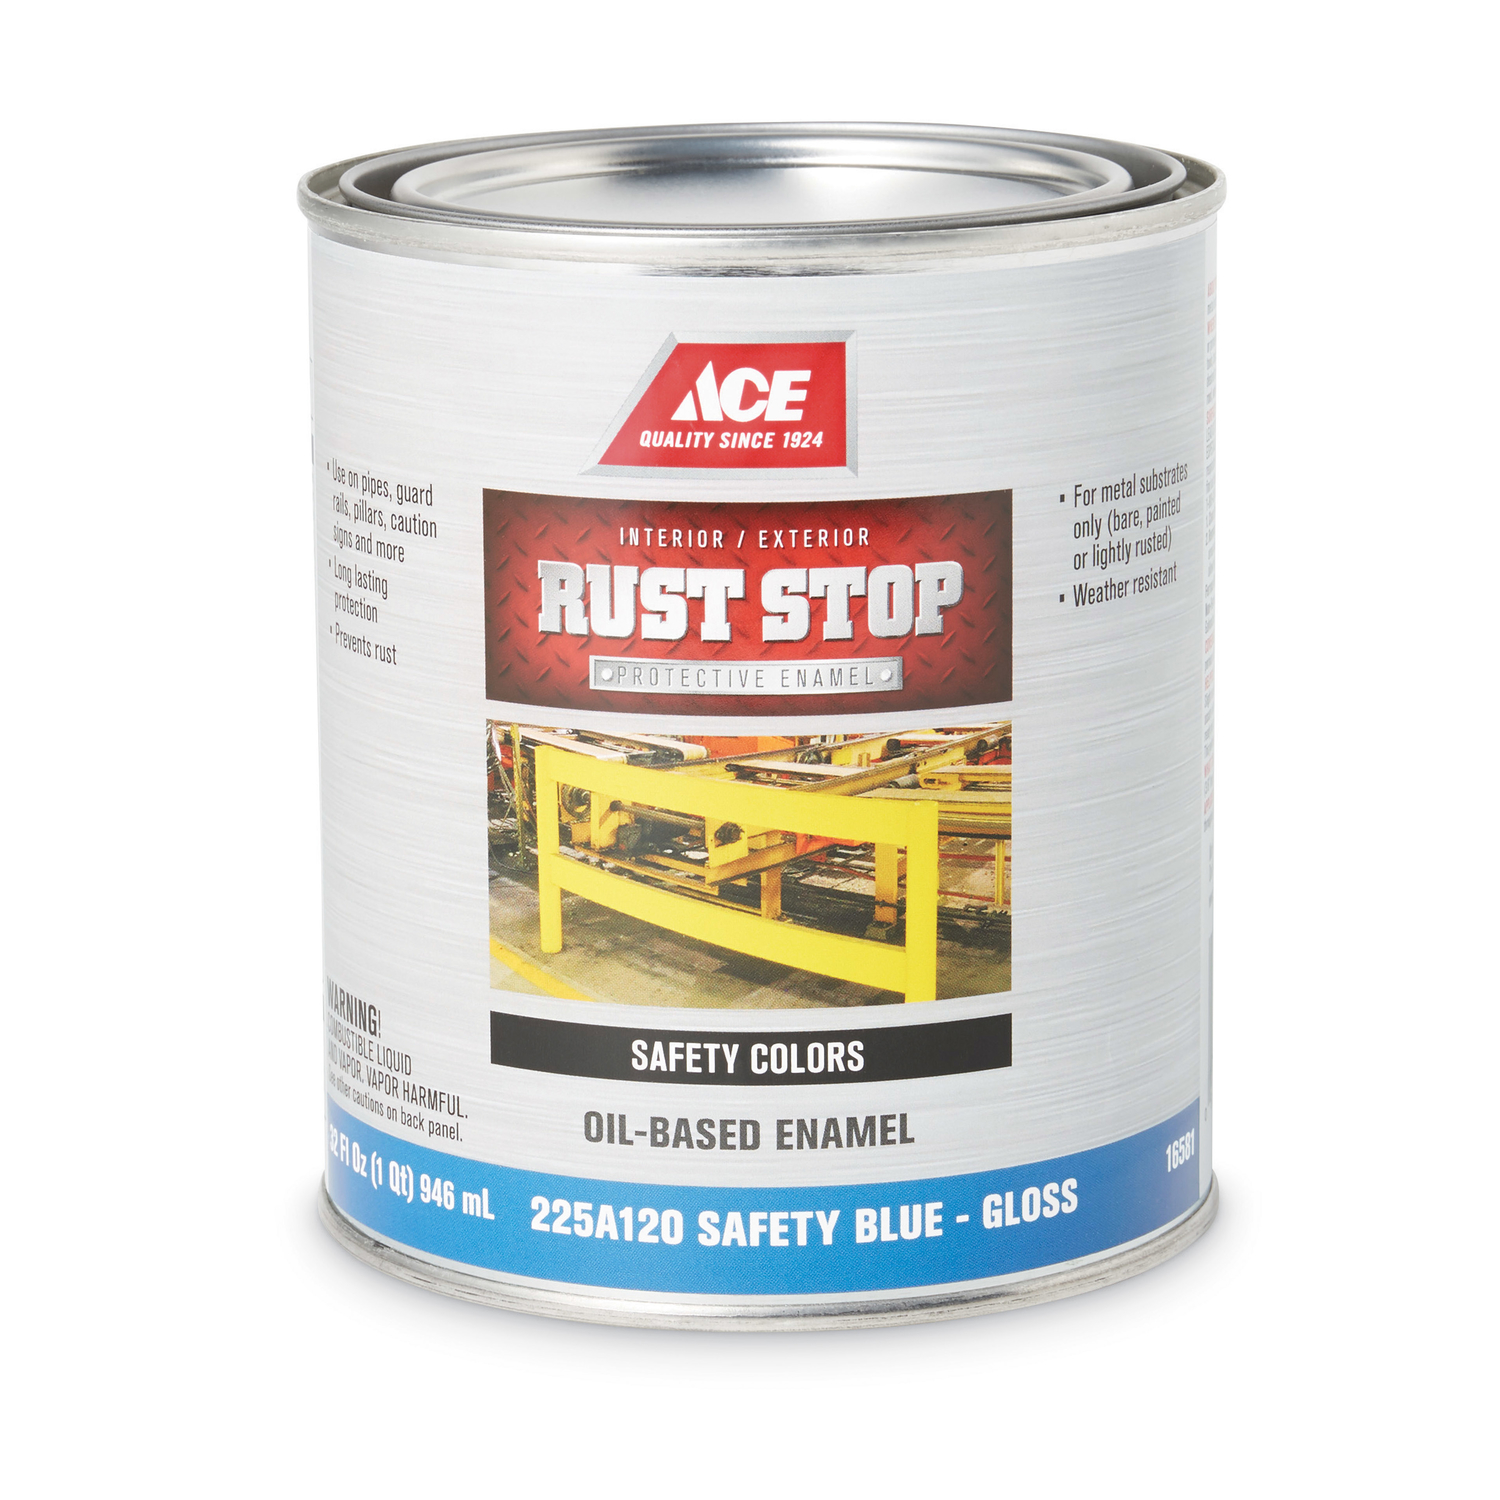 Ace  Rust Stop  Interior/Exterior  Gloss  Safety Blue  Indoor and Outdoor  1 qt. Rust Prevention Pai